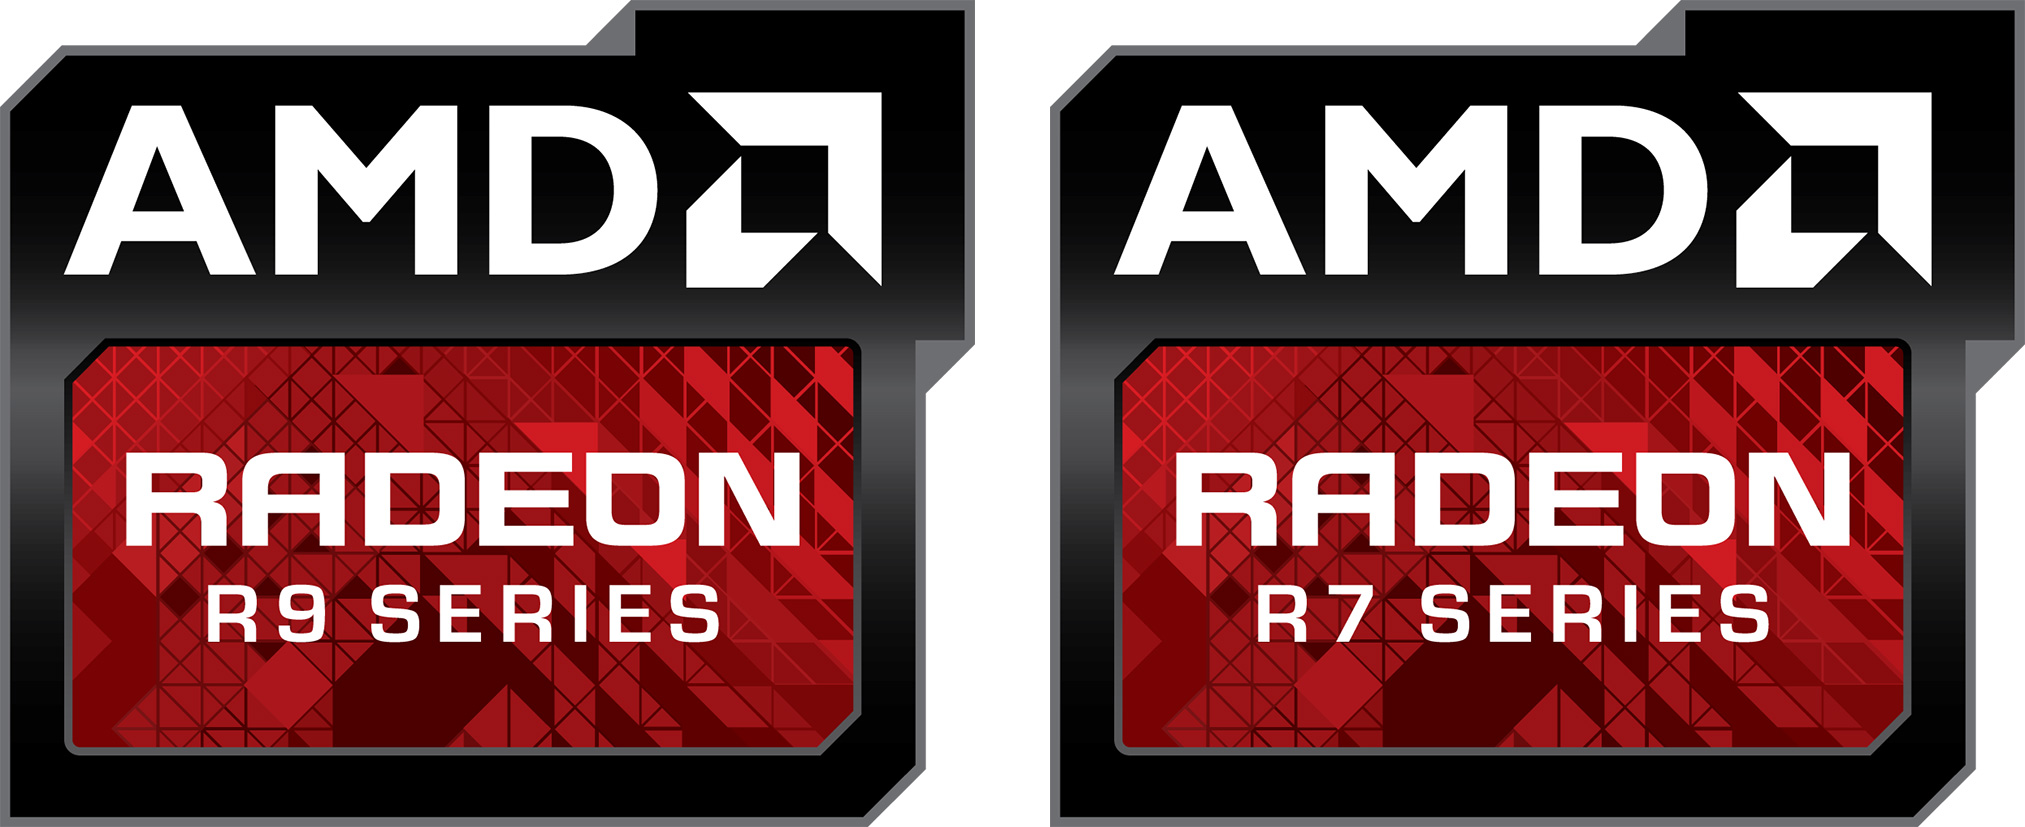 The Radeon R9 280X Review: Feat  Asus & XFX - Meet The